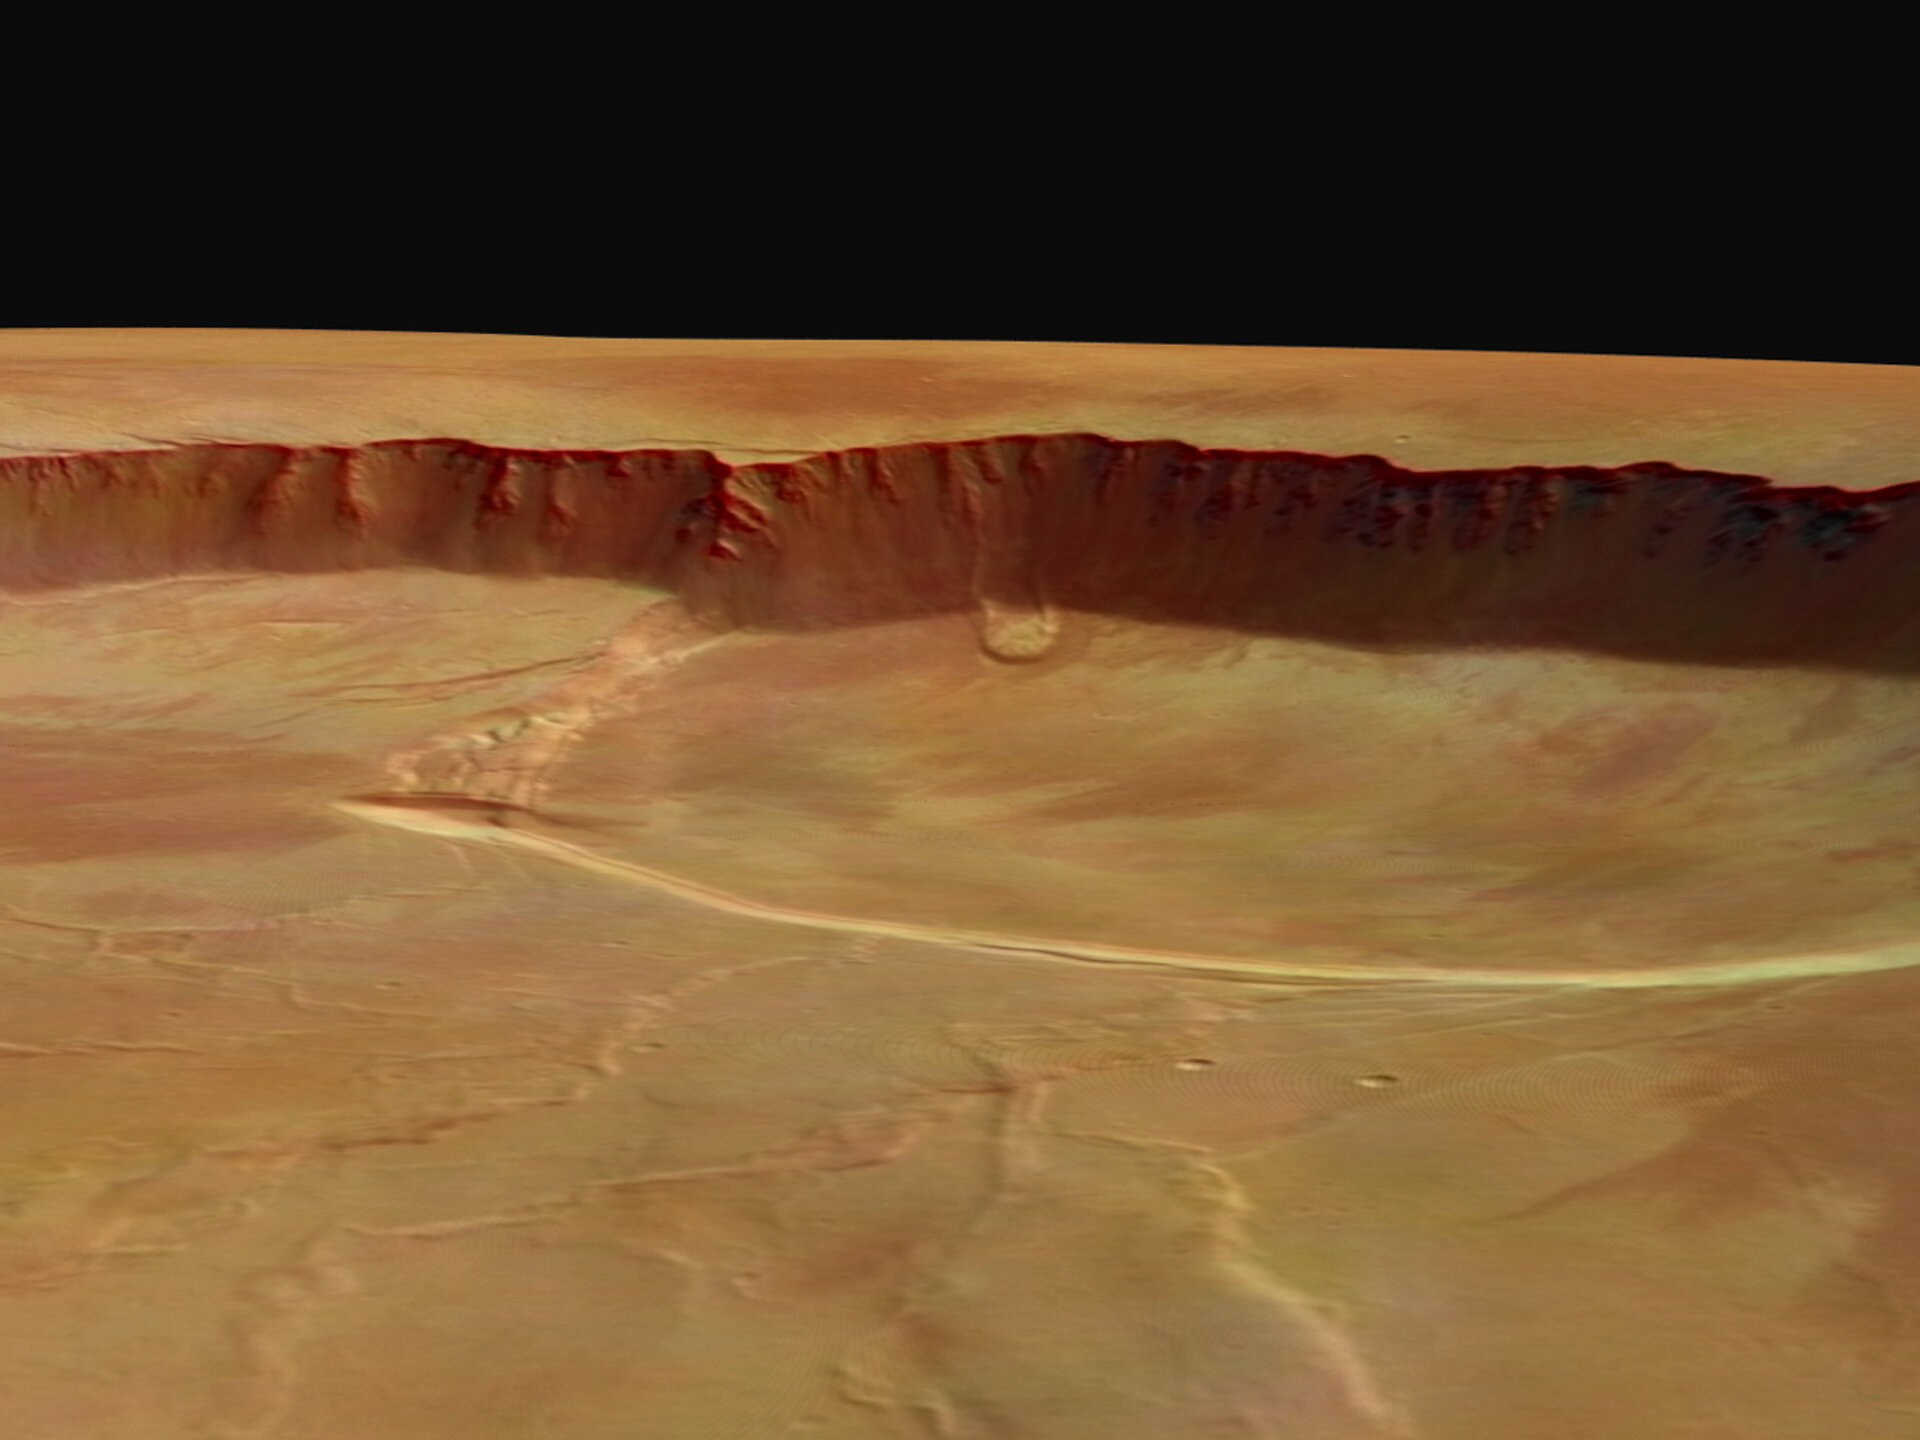 Detail of the southern part of the caldera in perspective - Mars Express